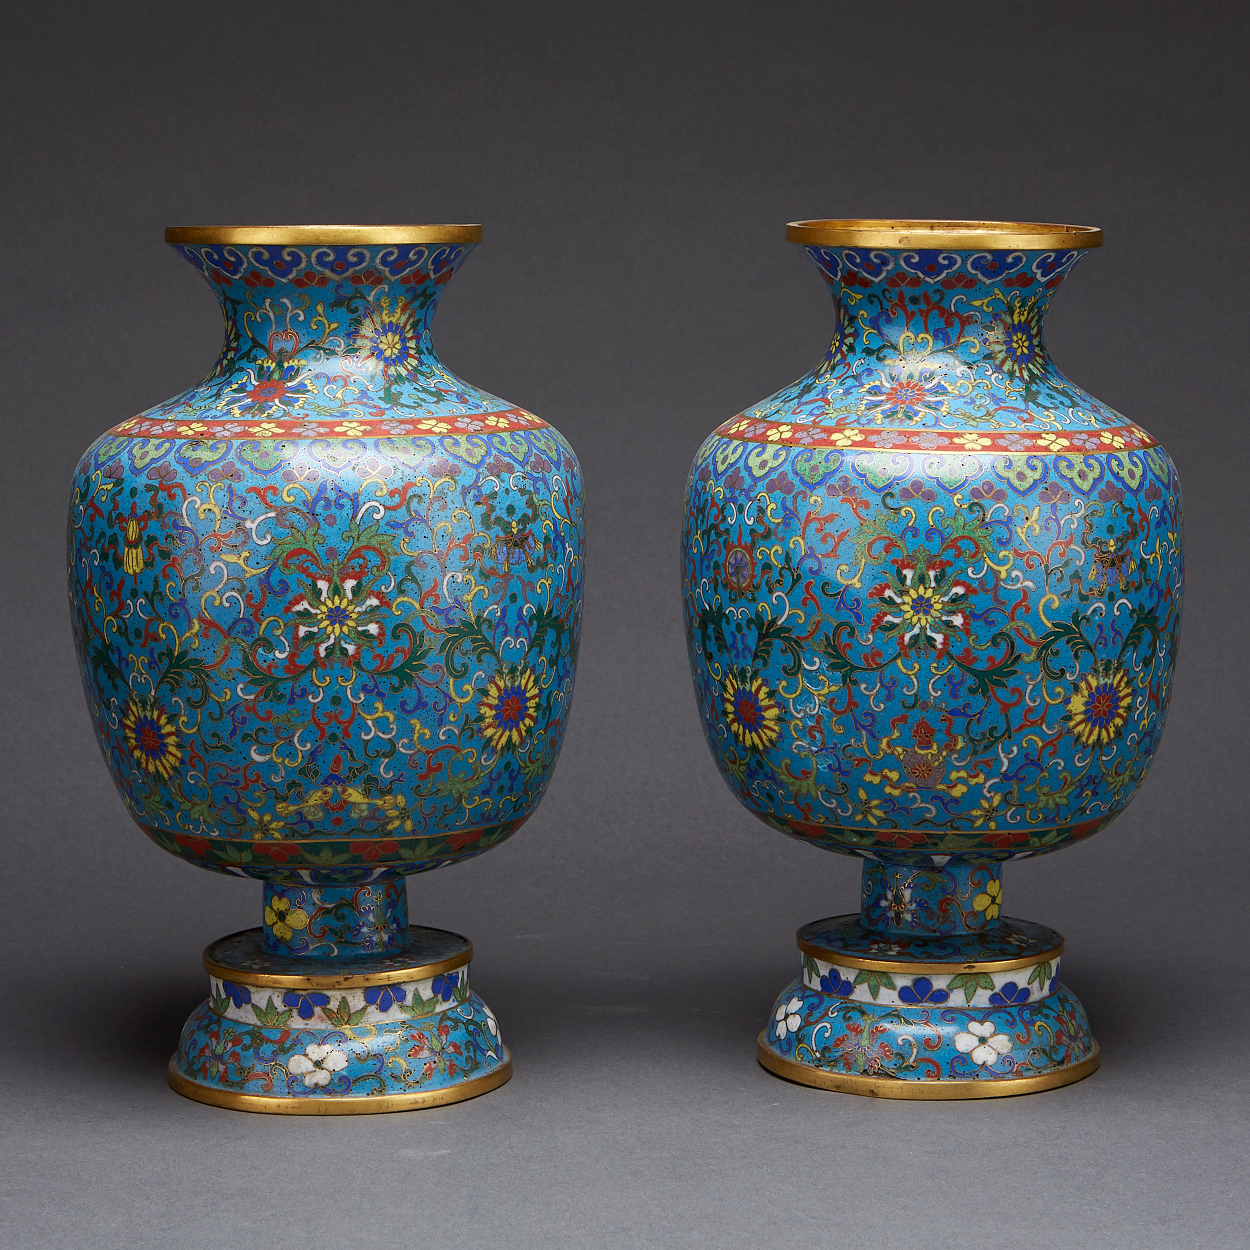 A Pair of Cloisonné and Gilt-Bronze 'Lotus' Vases